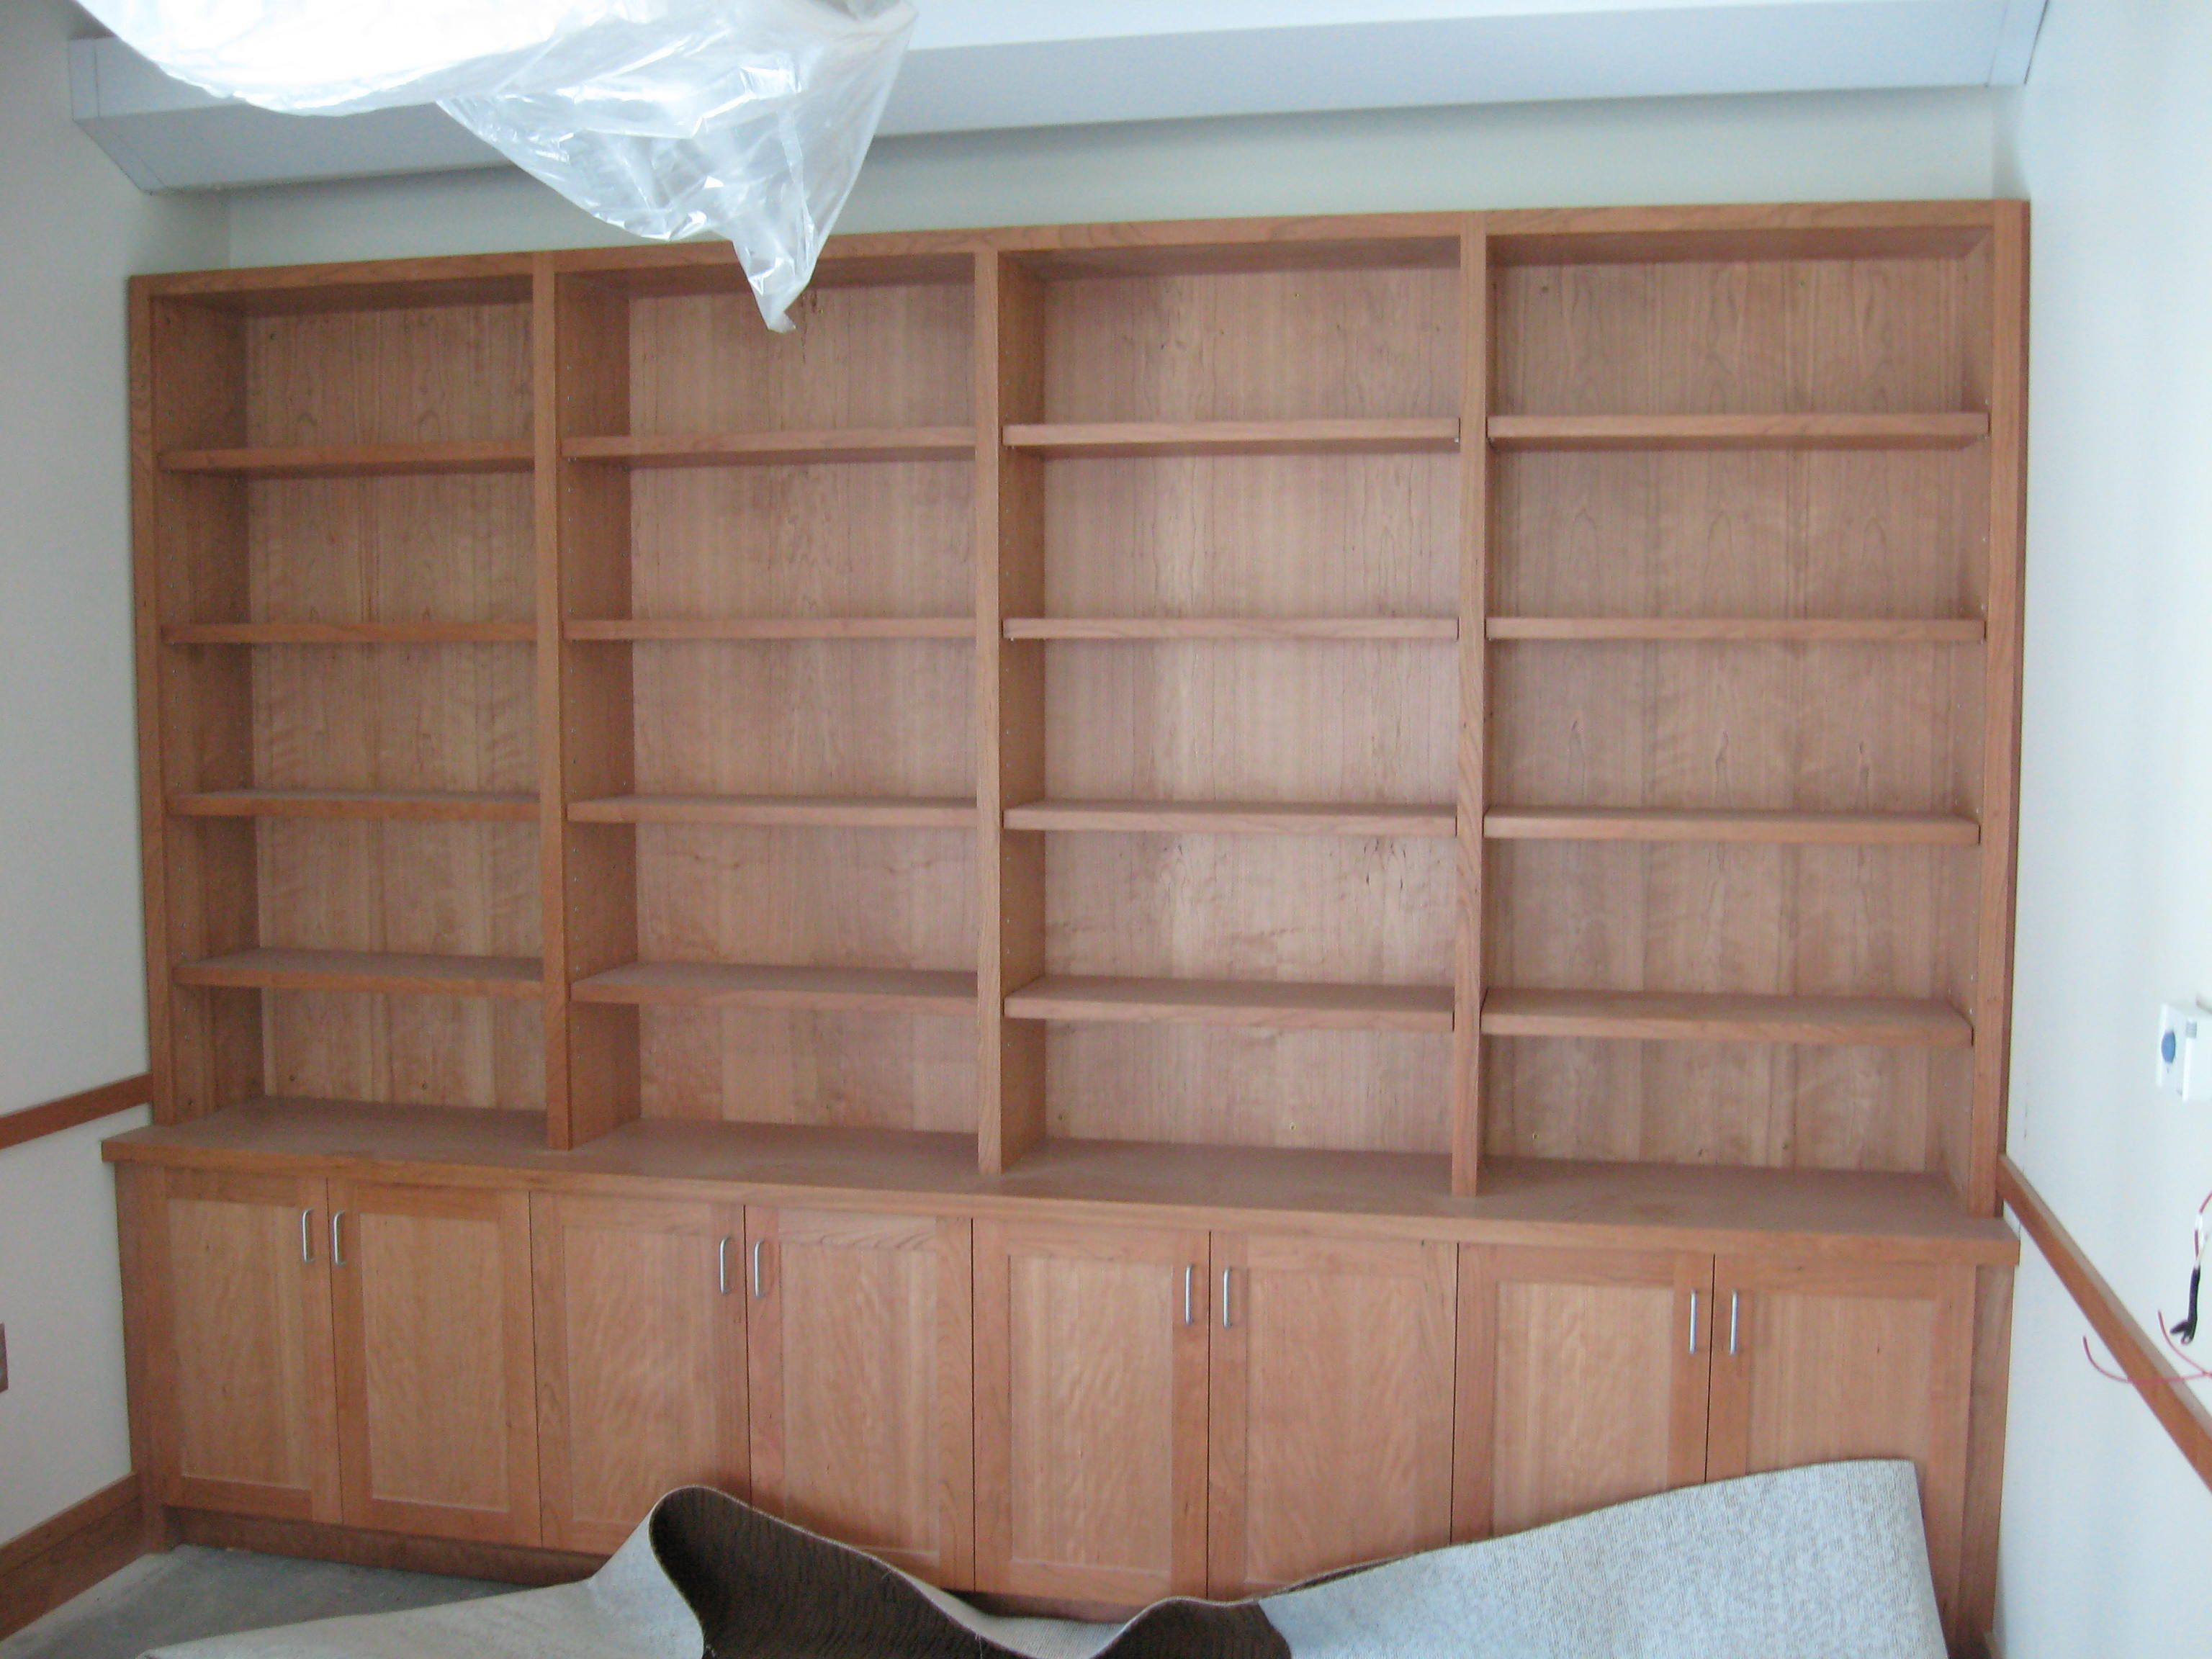 how to build your own shelving shelf building tips building shelves shelves and building. Black Bedroom Furniture Sets. Home Design Ideas